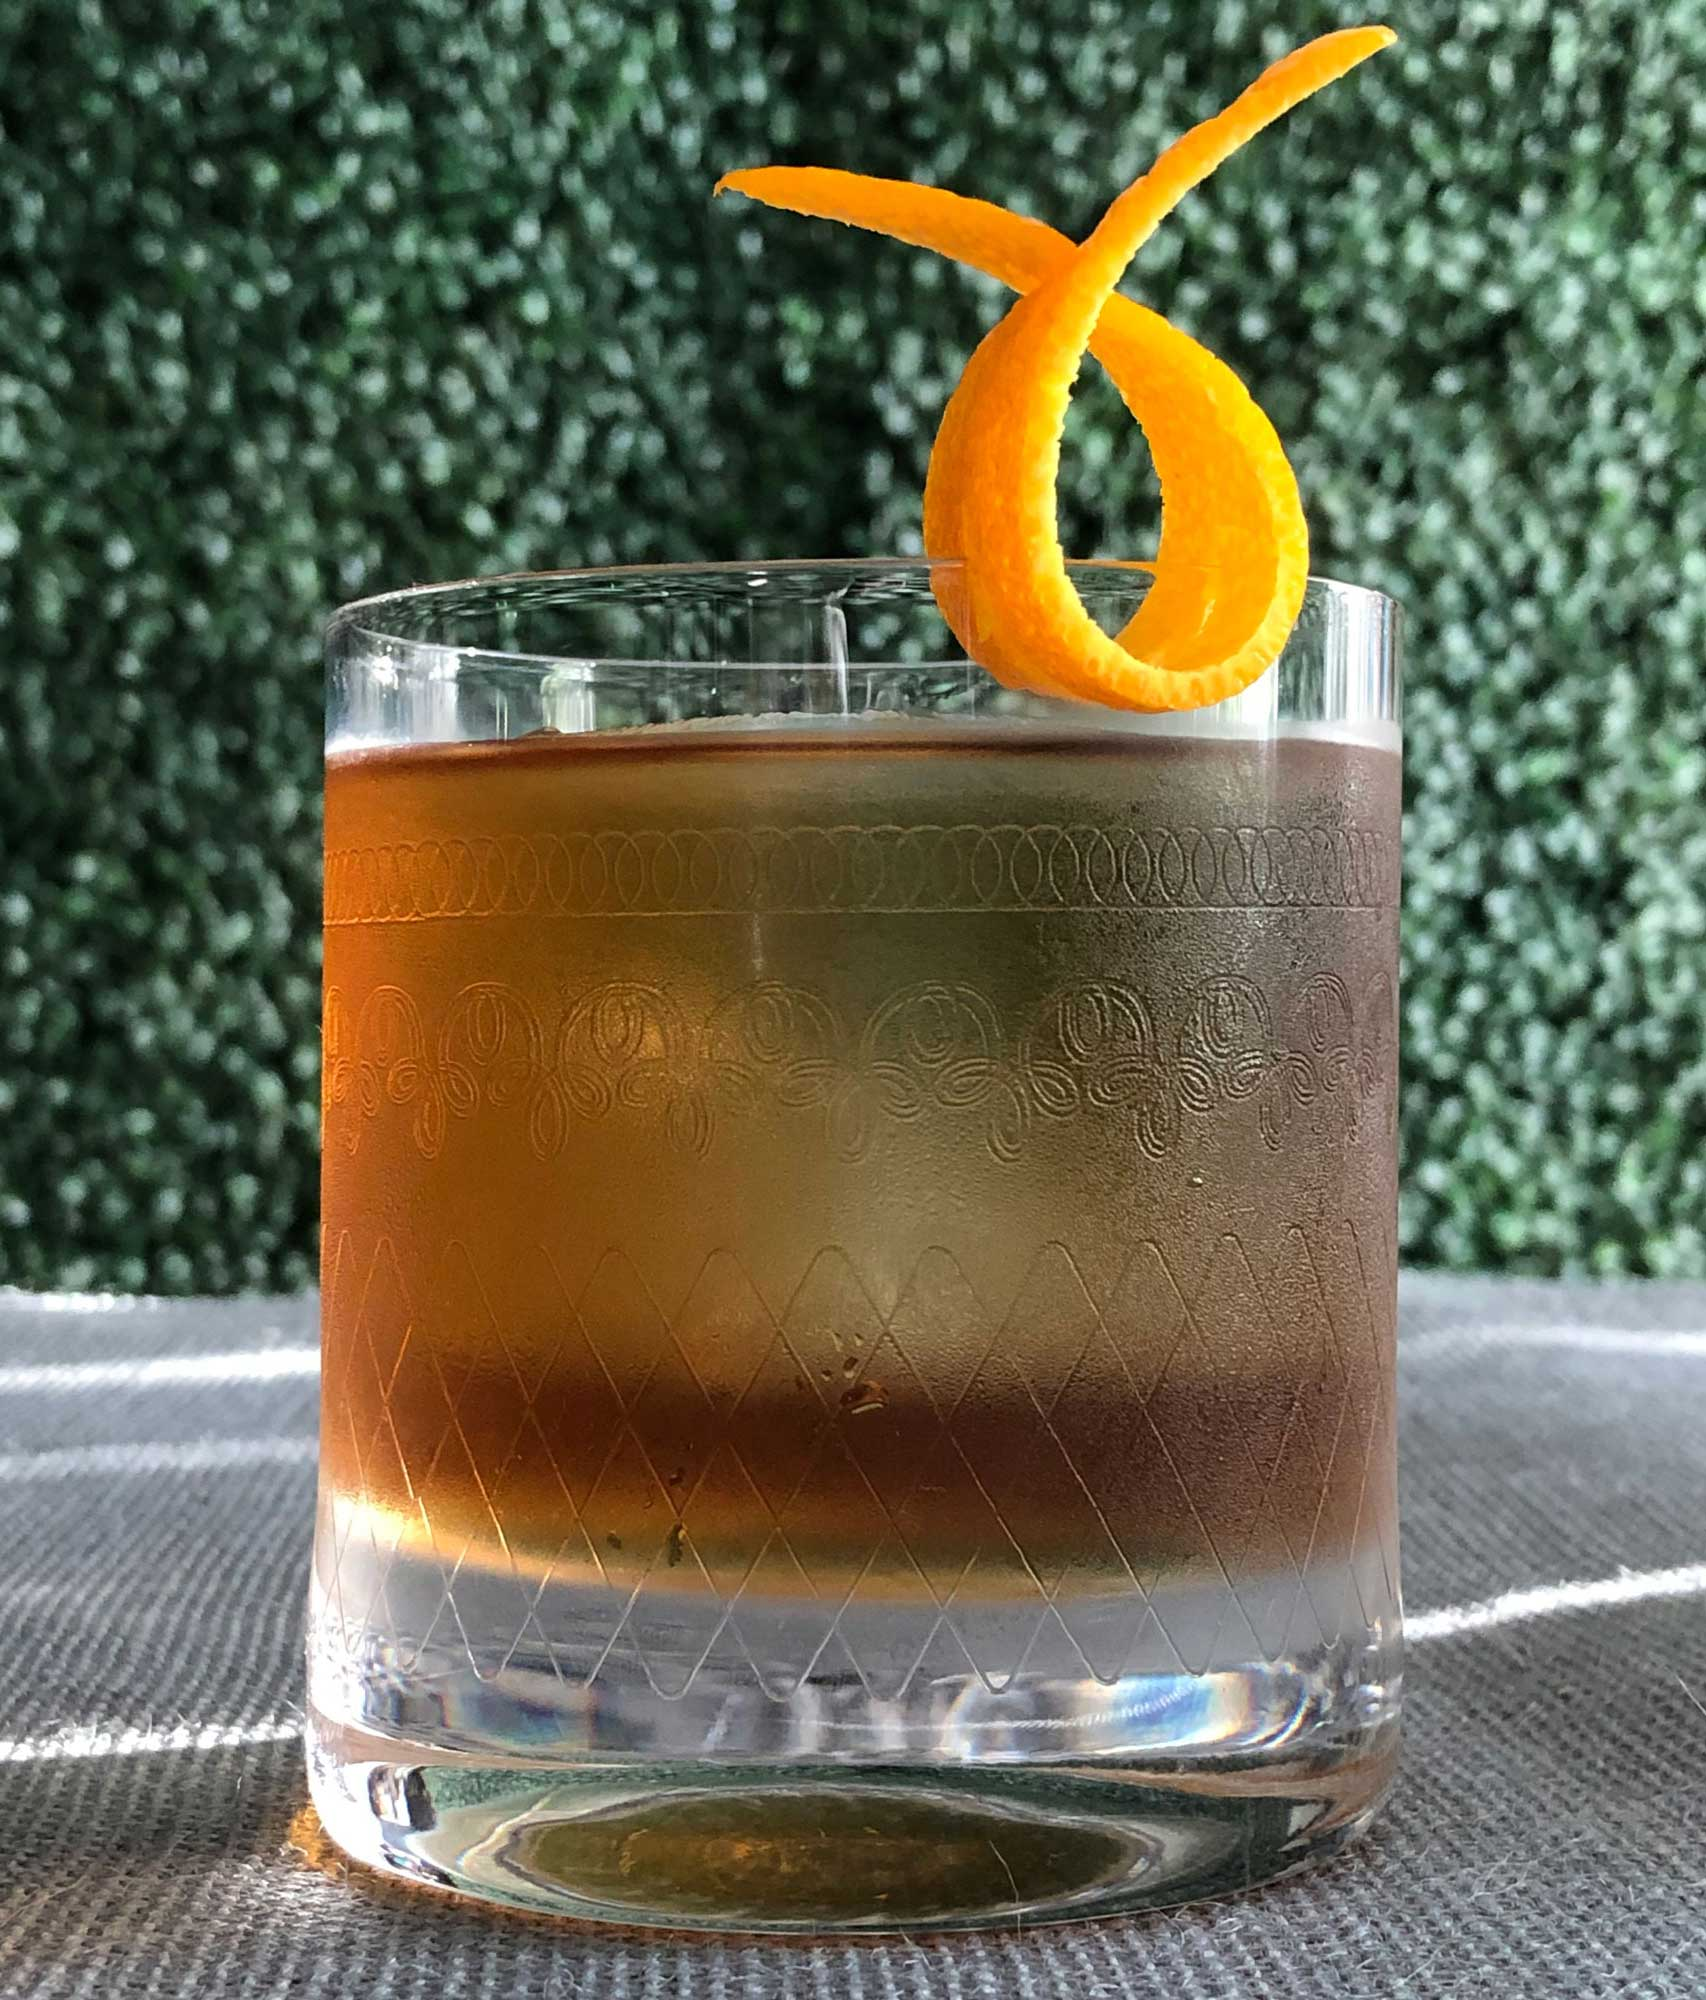 An example of the Piston Honda, the mixed drink (cocktail), by Brandon Wise, Sage Restaurant Group, featuring japanese whisky, Bonal Gentiane-Quina, maraschino liqueur, and orange bitters; photo by Lee Edwards